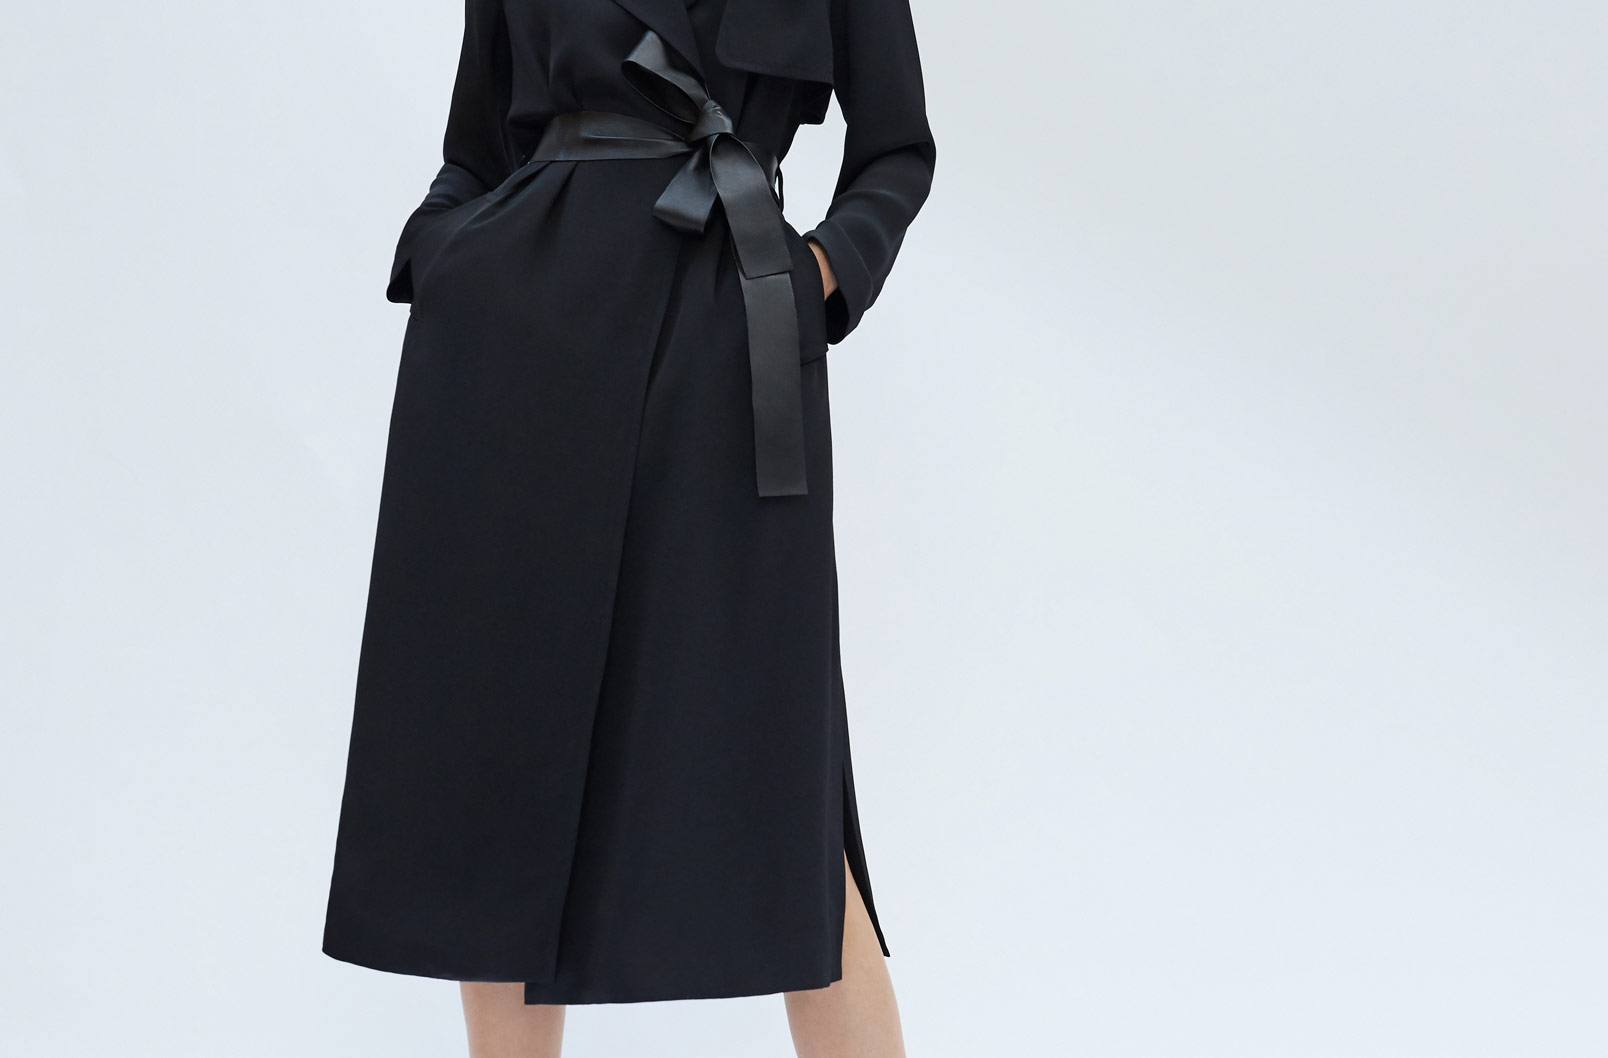 Image showing model wearing Silk Classic Trench